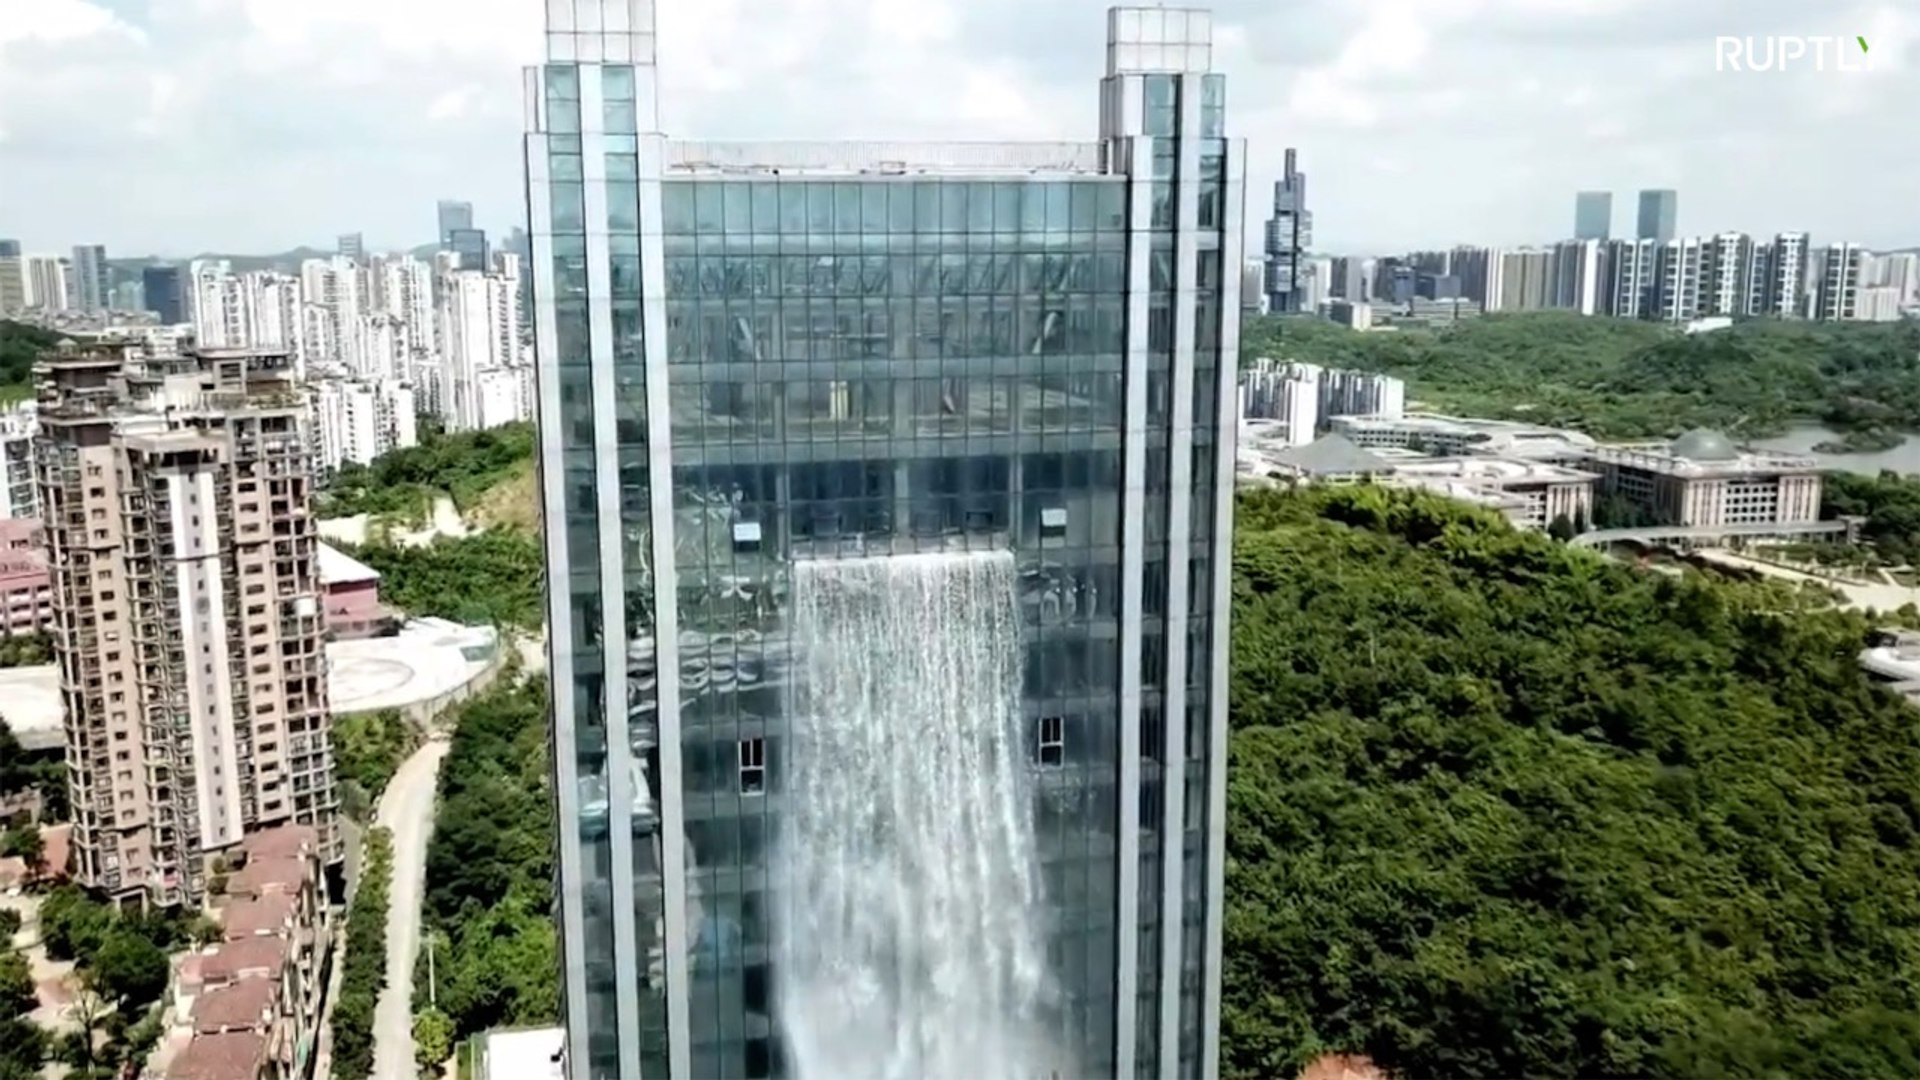 China's eye-wateringly expensive artificial waterfall splits opinion